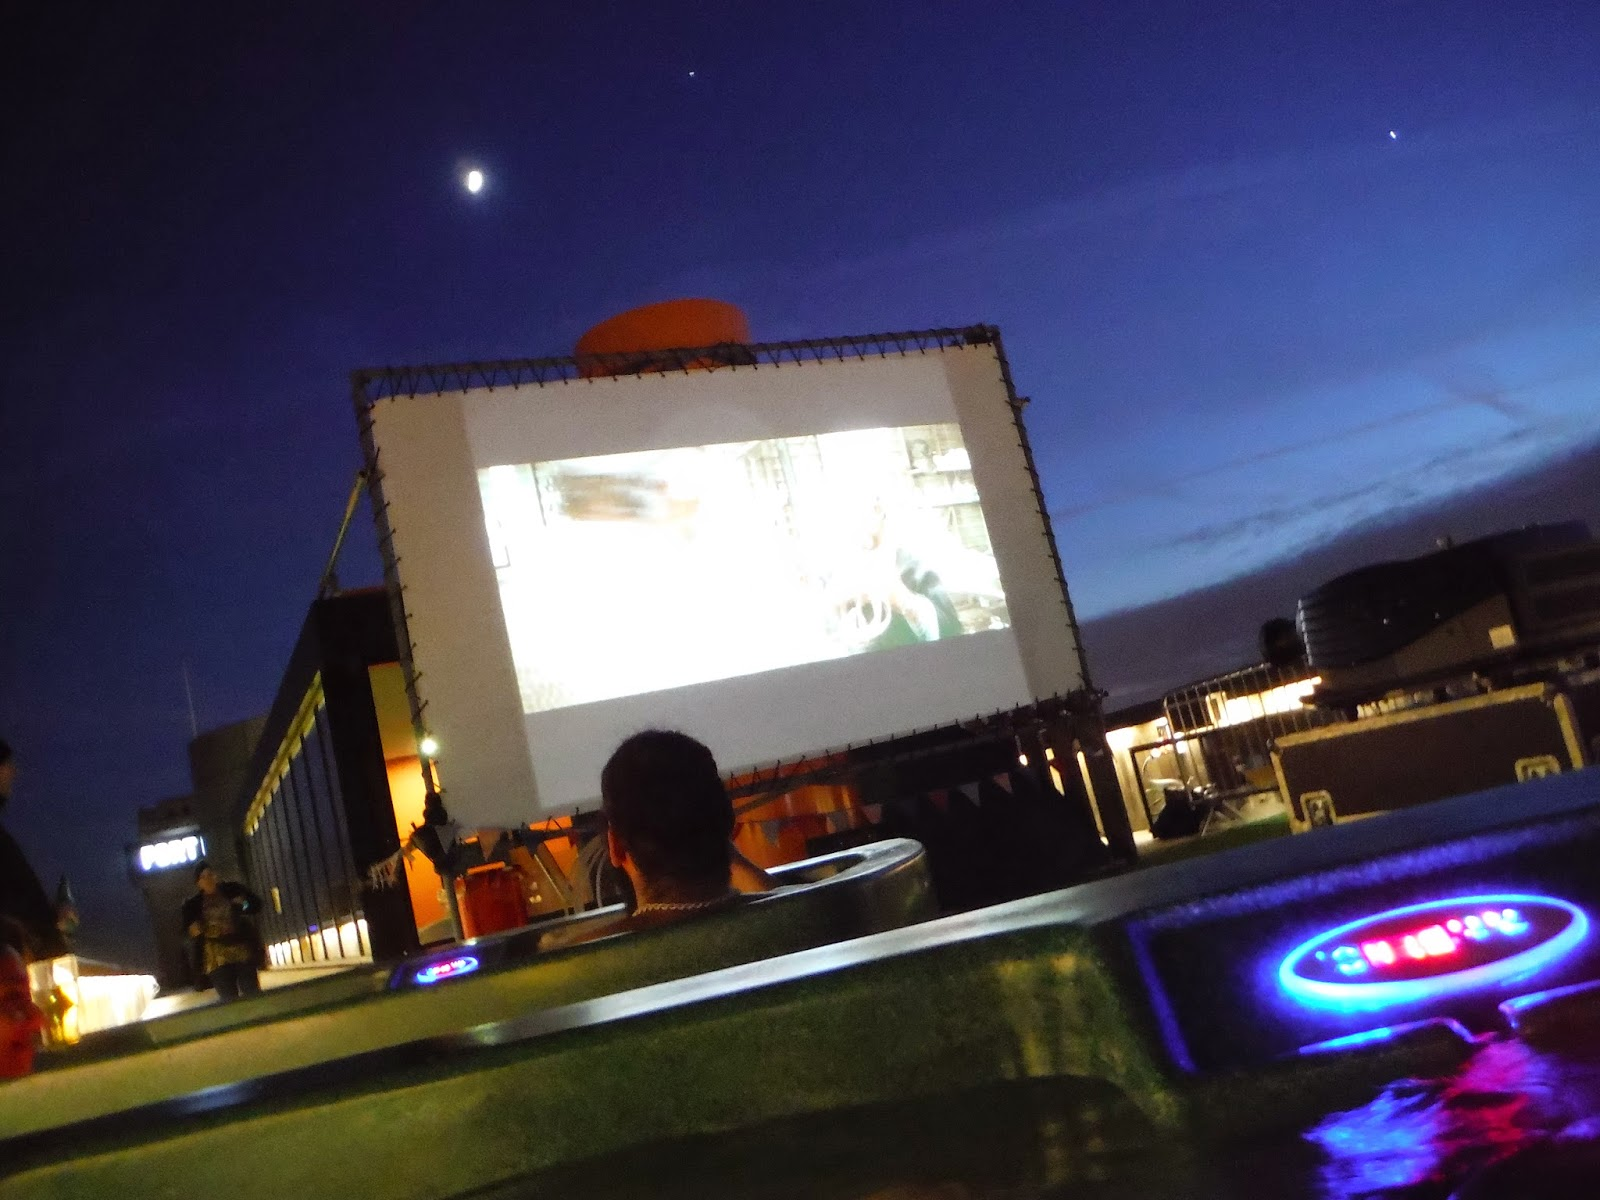 the cinema screen as the film was playing